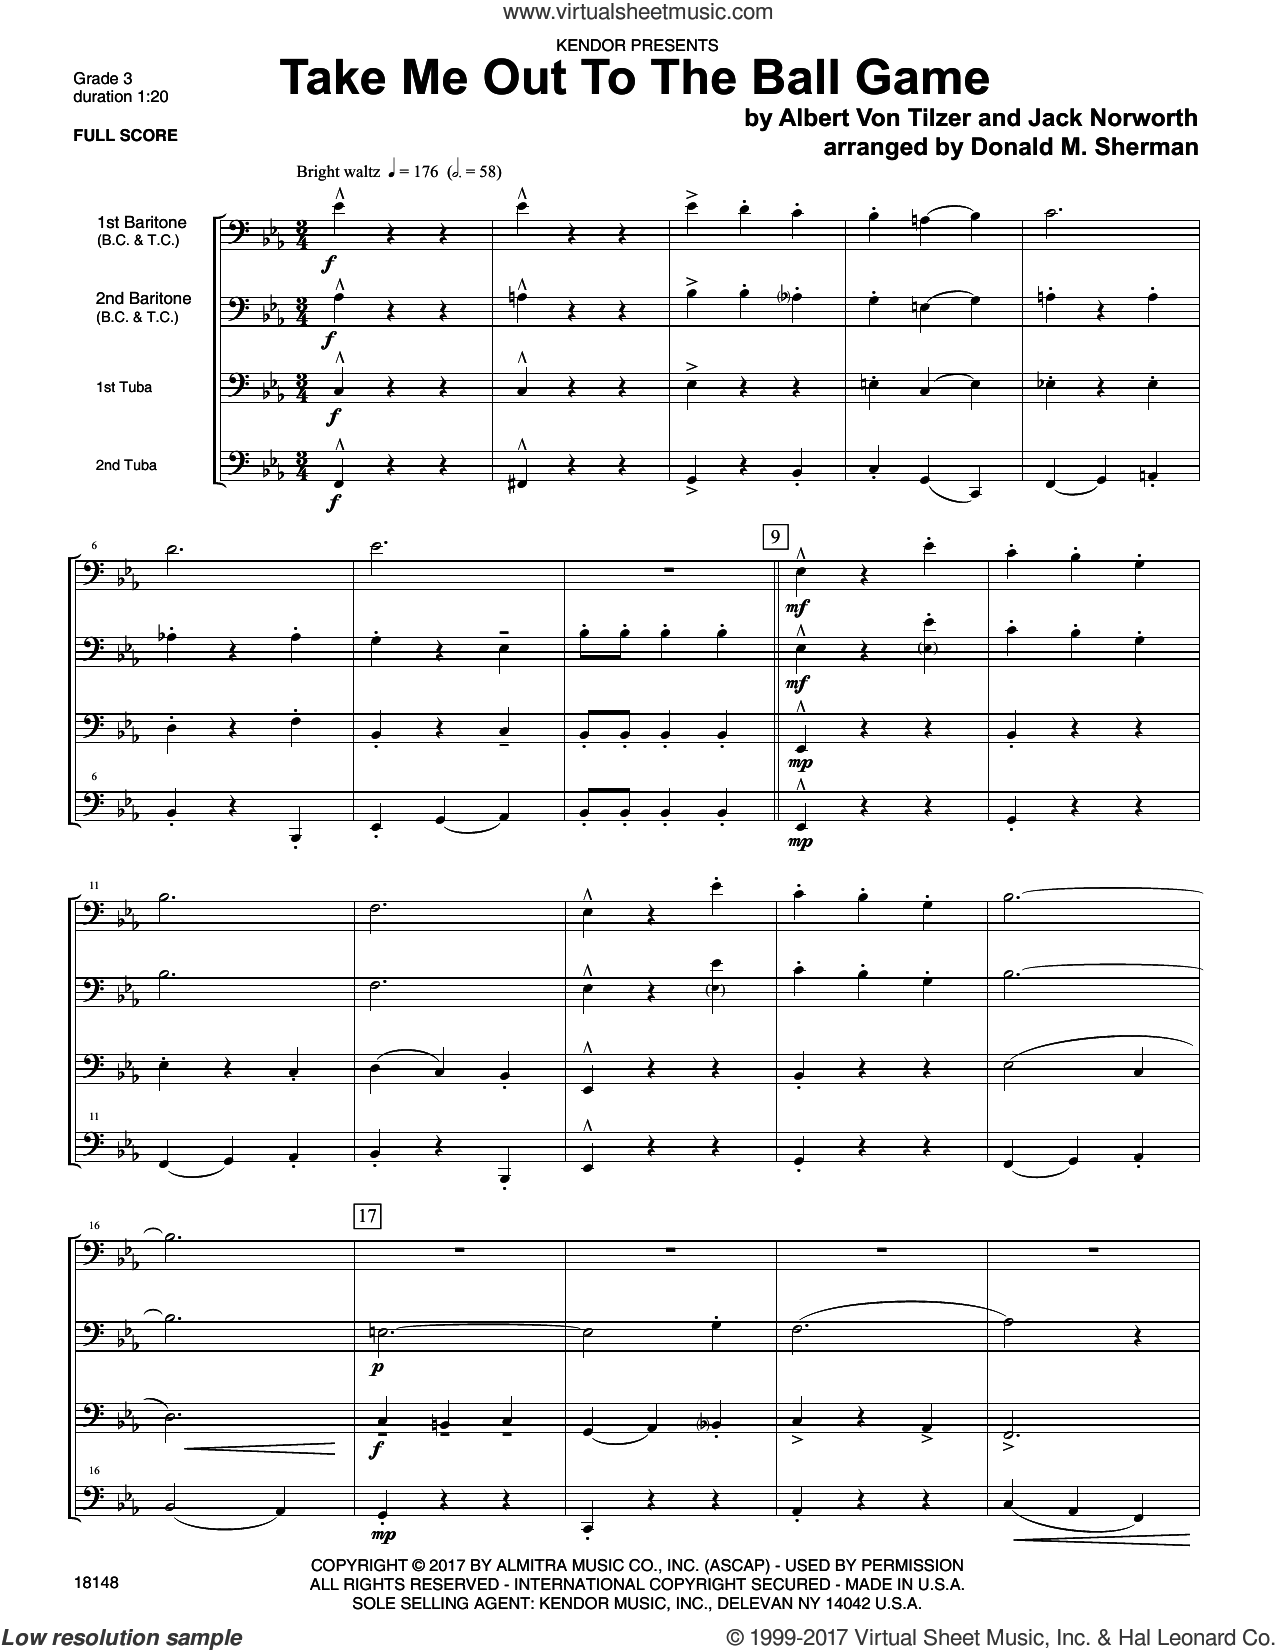 Take Me Out To The Ball Game (COMPLETE) sheet music for brass ensemble by Donald M. Sherman and Von Tilzer & Norworth, intermediate skill level